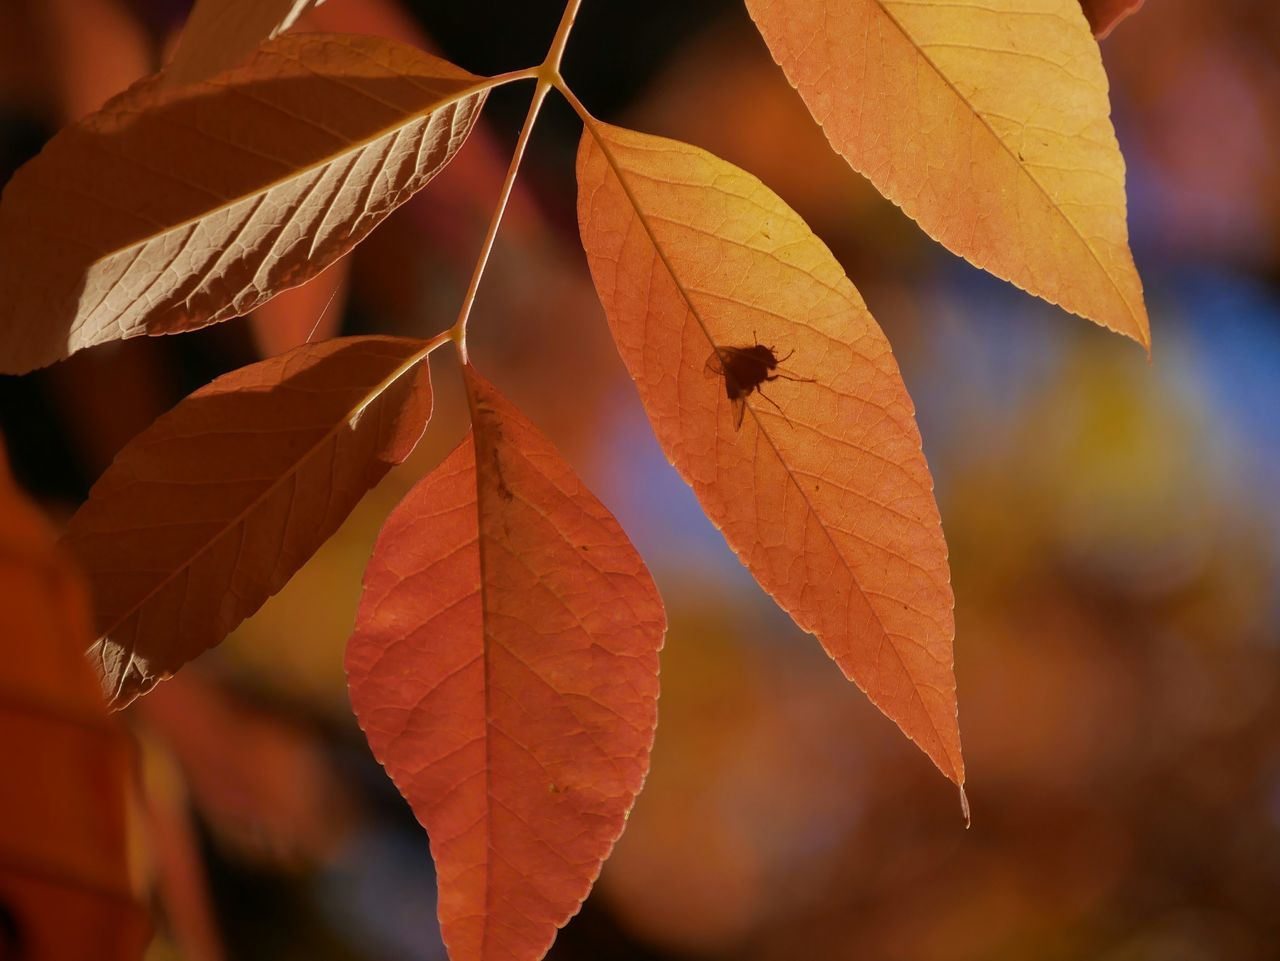 leaf, autumn, change, focus on foreground, close-up, day, no people, outdoors, maple leaf, nature, maple, beauty in nature